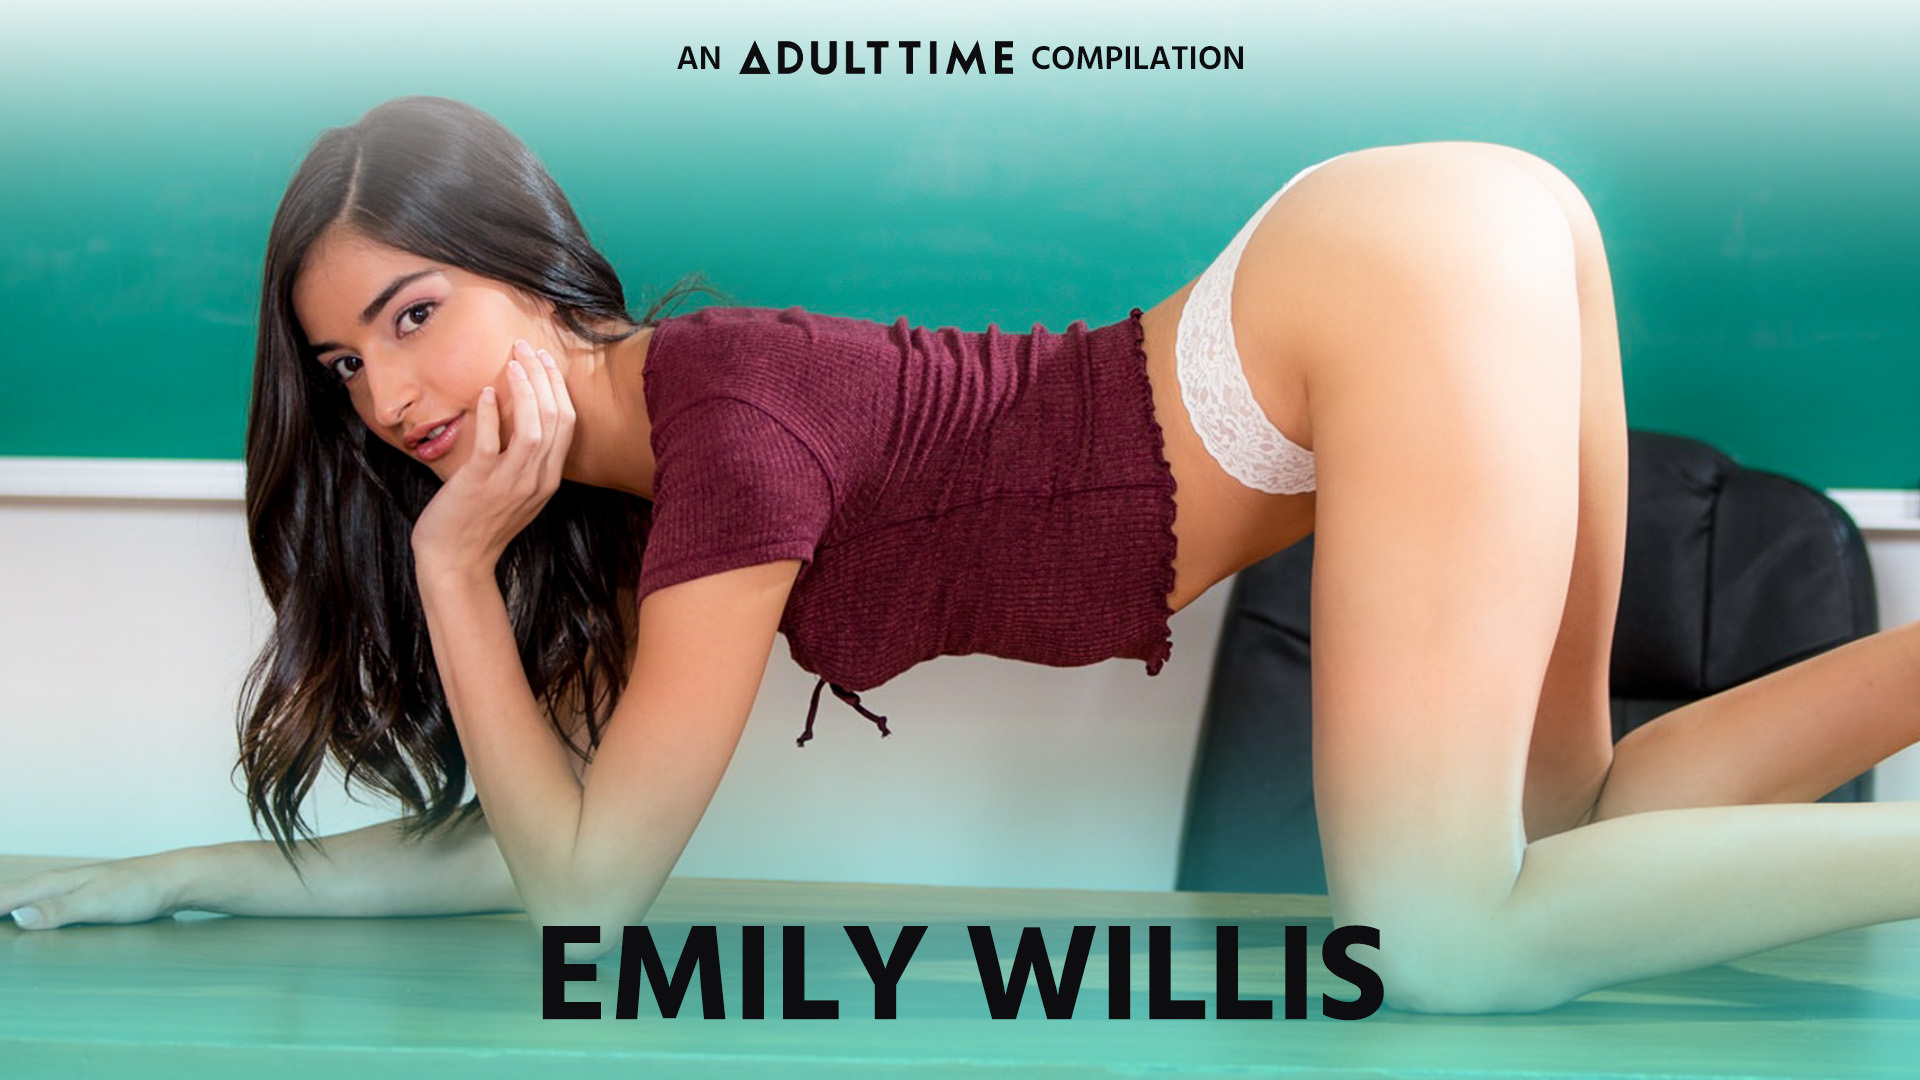 Emily Willis - An Adult Time Compilation - Emily Willis 1